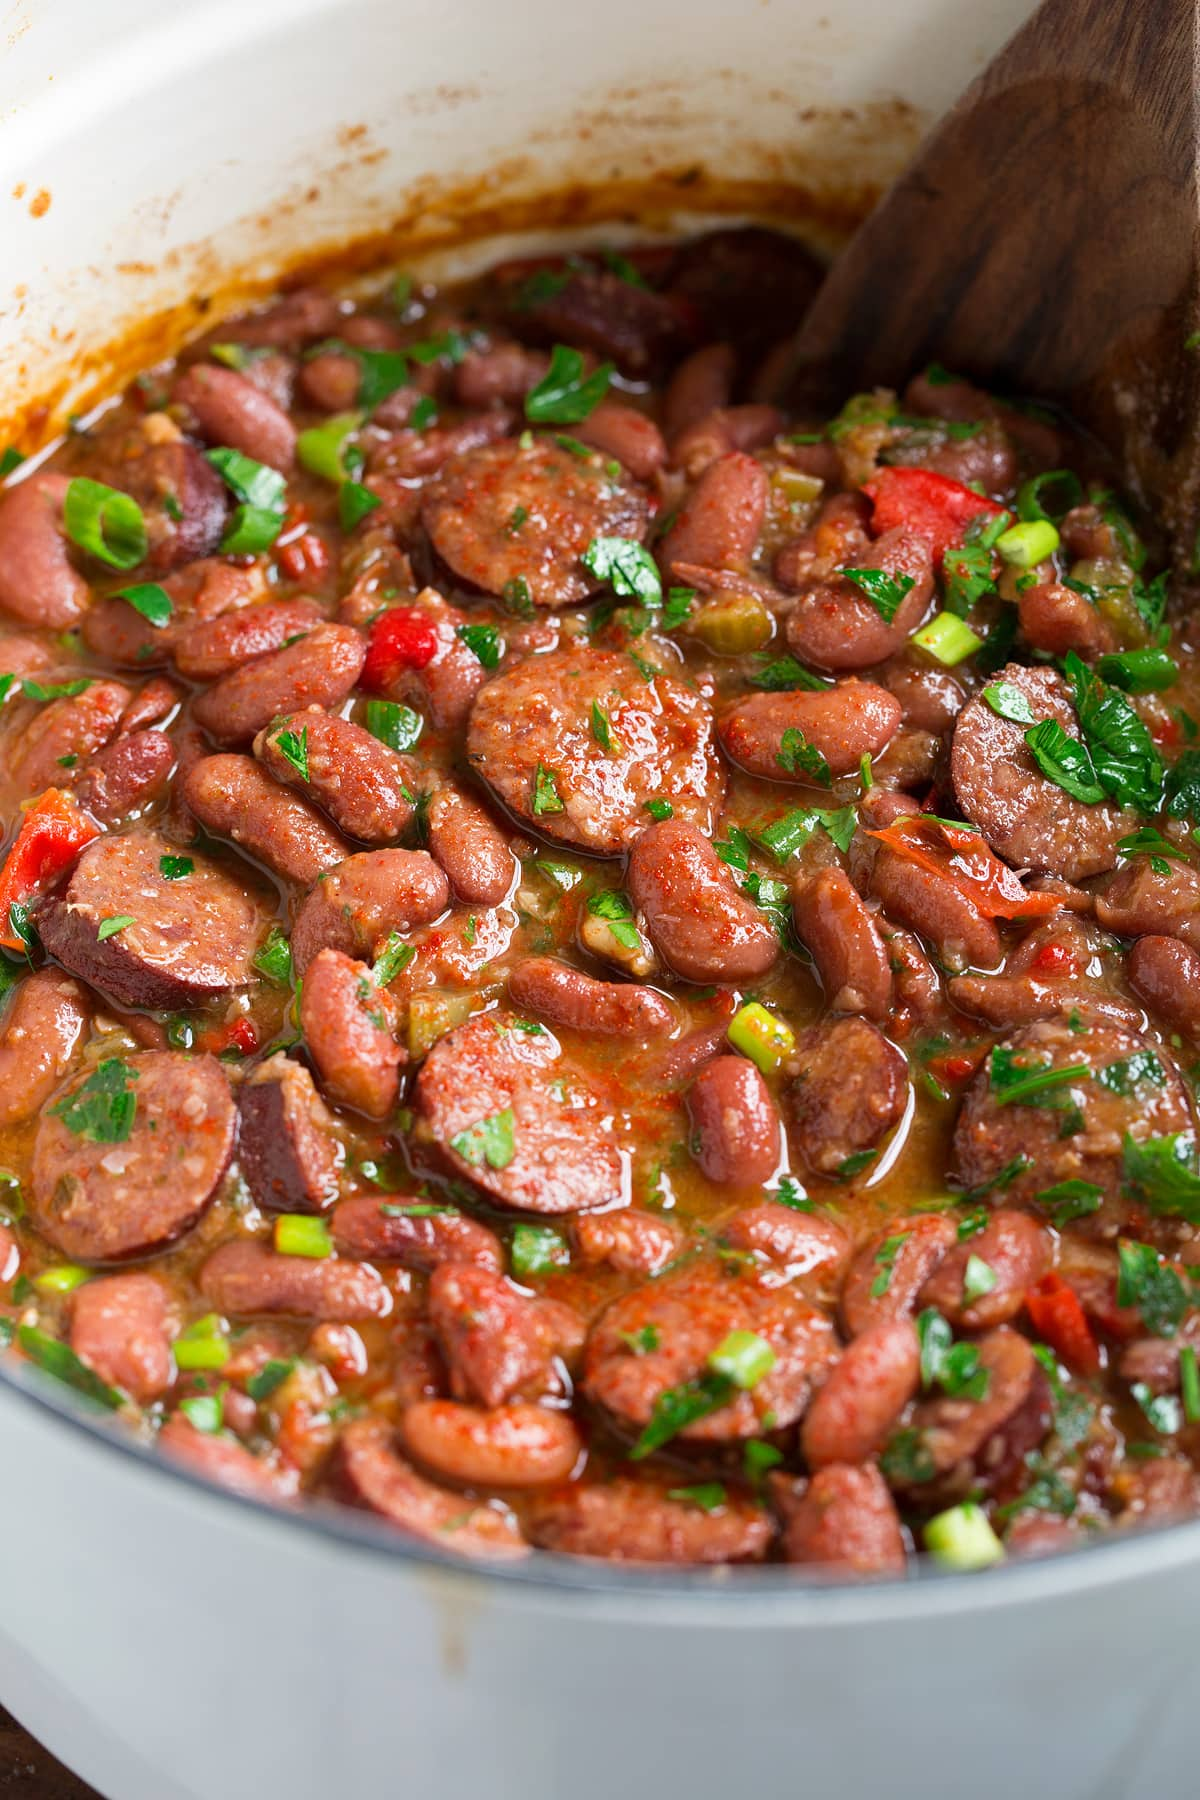 Close up image of red beans and rice.